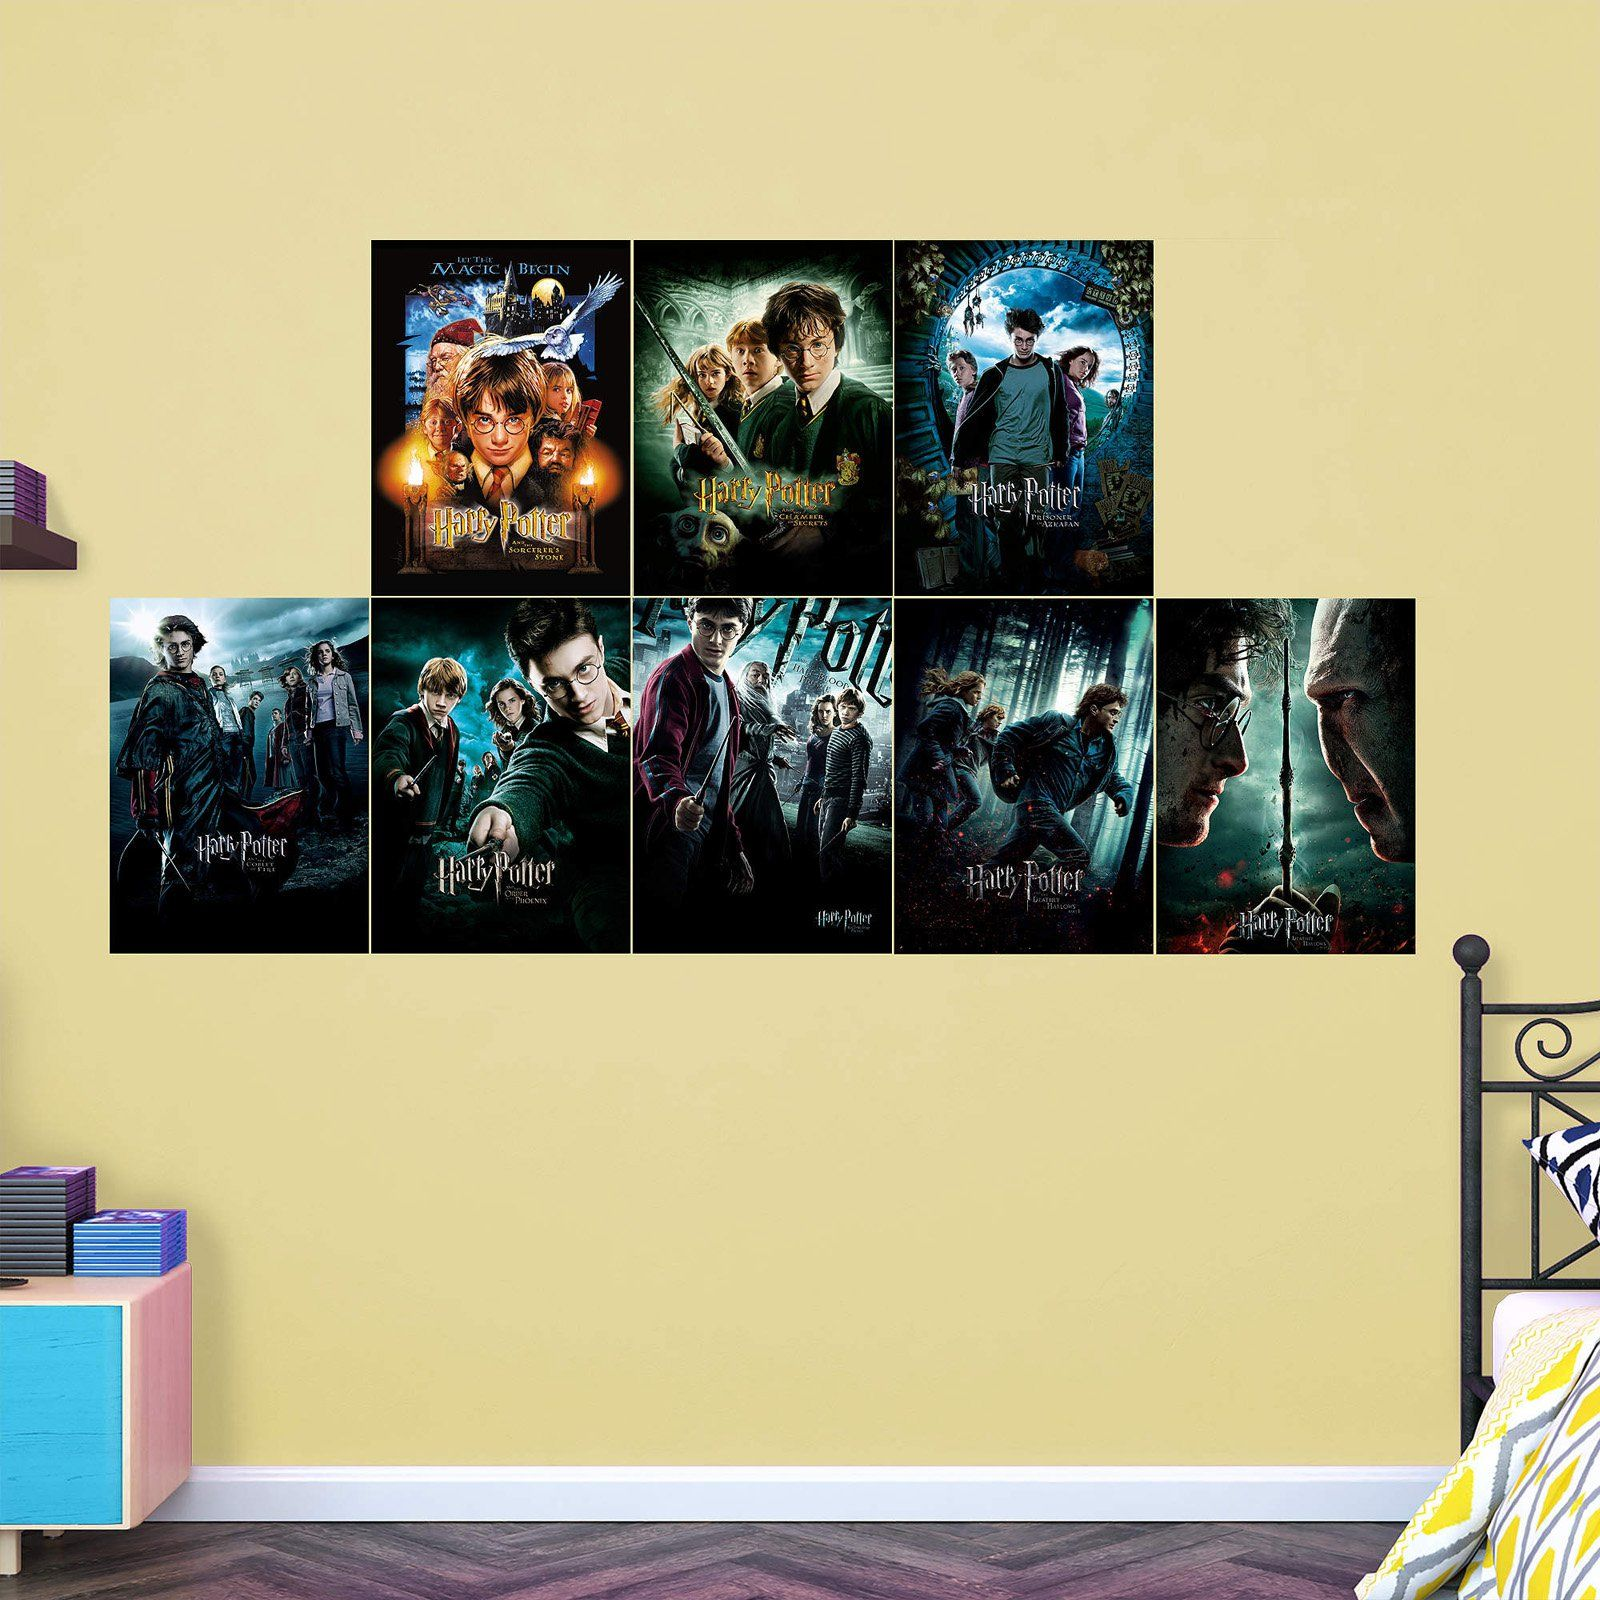 Fathead Harry Potter Movie Wall Decal Collection - 97-97113 ...